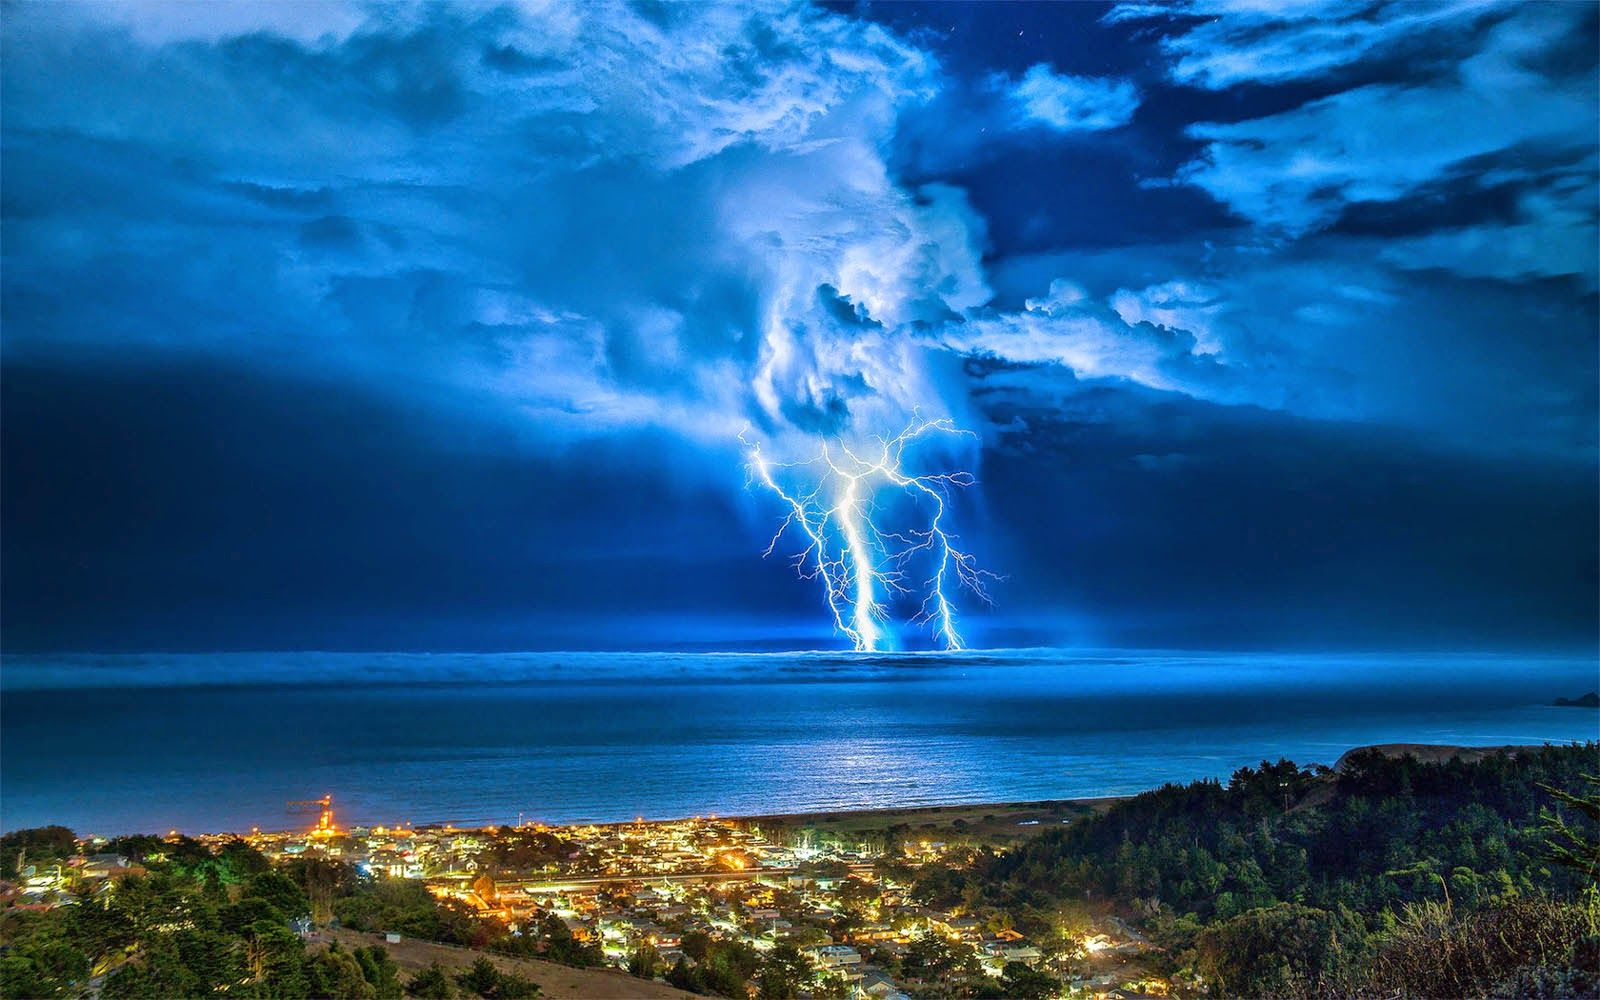 Lightning Backgrounds Android Apps on Google Play 1920